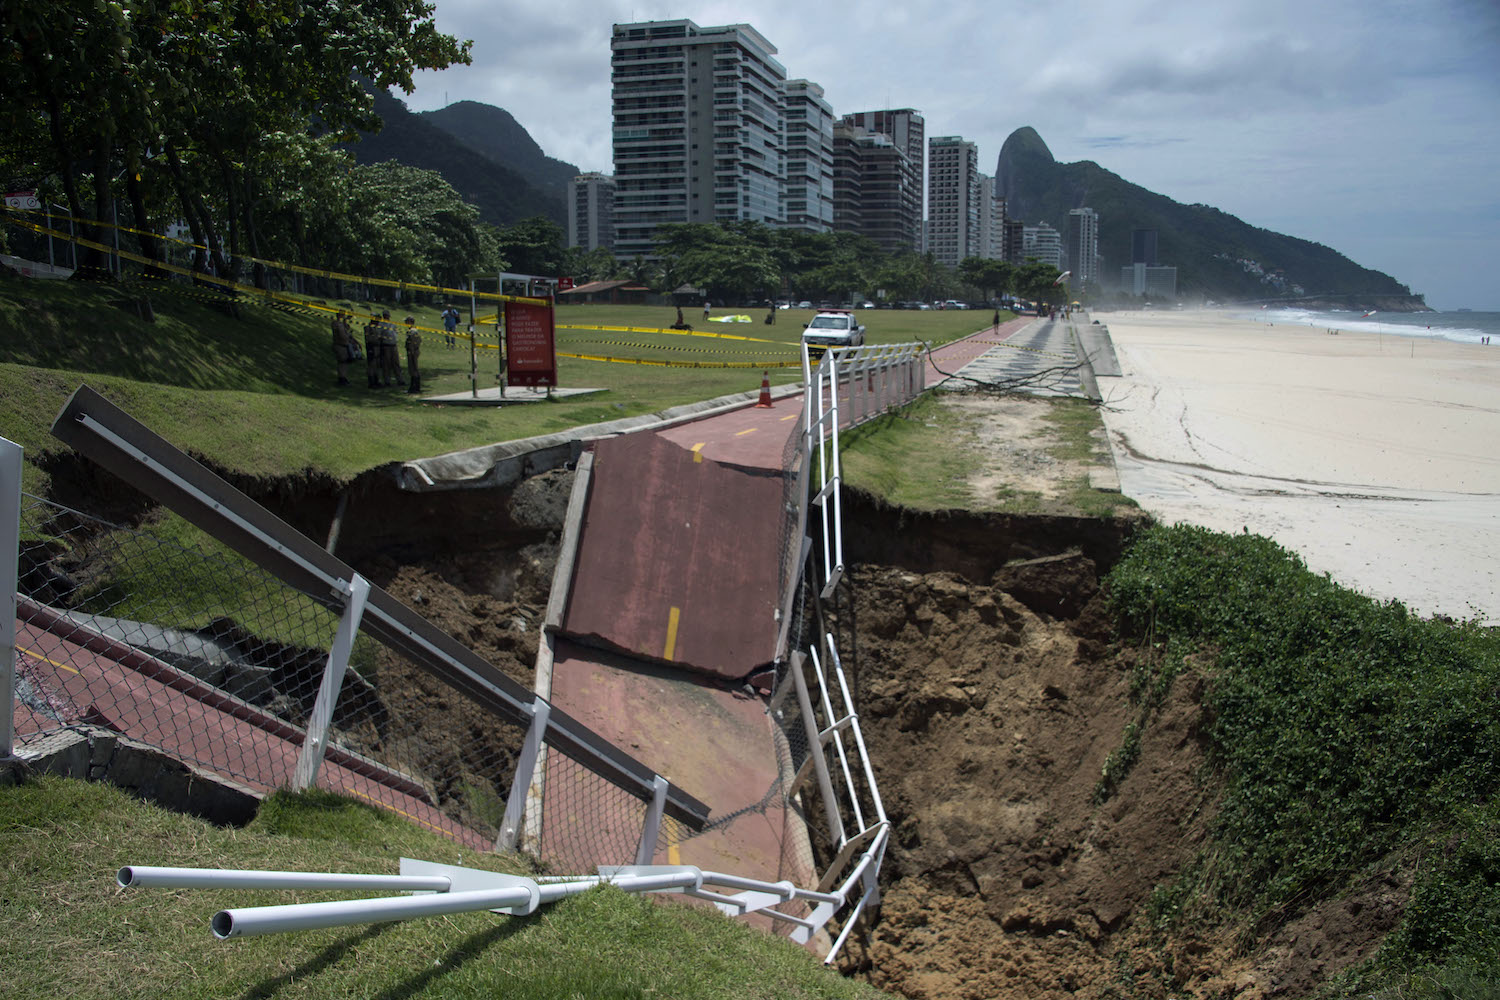 TOPSHOT - View of a bicycle lane which collapsed after being hit by a violent storm in Sao Conrado beach, Rio de Janeiro, Brazil, on February 15, 2018.  Many neighbourhoods in Rio de Janeiro ended up with blocked roads, fallen trees and floodings, after being affected by heavy rains and wind during a storm. / AFP PHOTO / MAURO PIMENTEL        (Photo credit should read MAURO PIMENTEL/AFP/Getty Images)